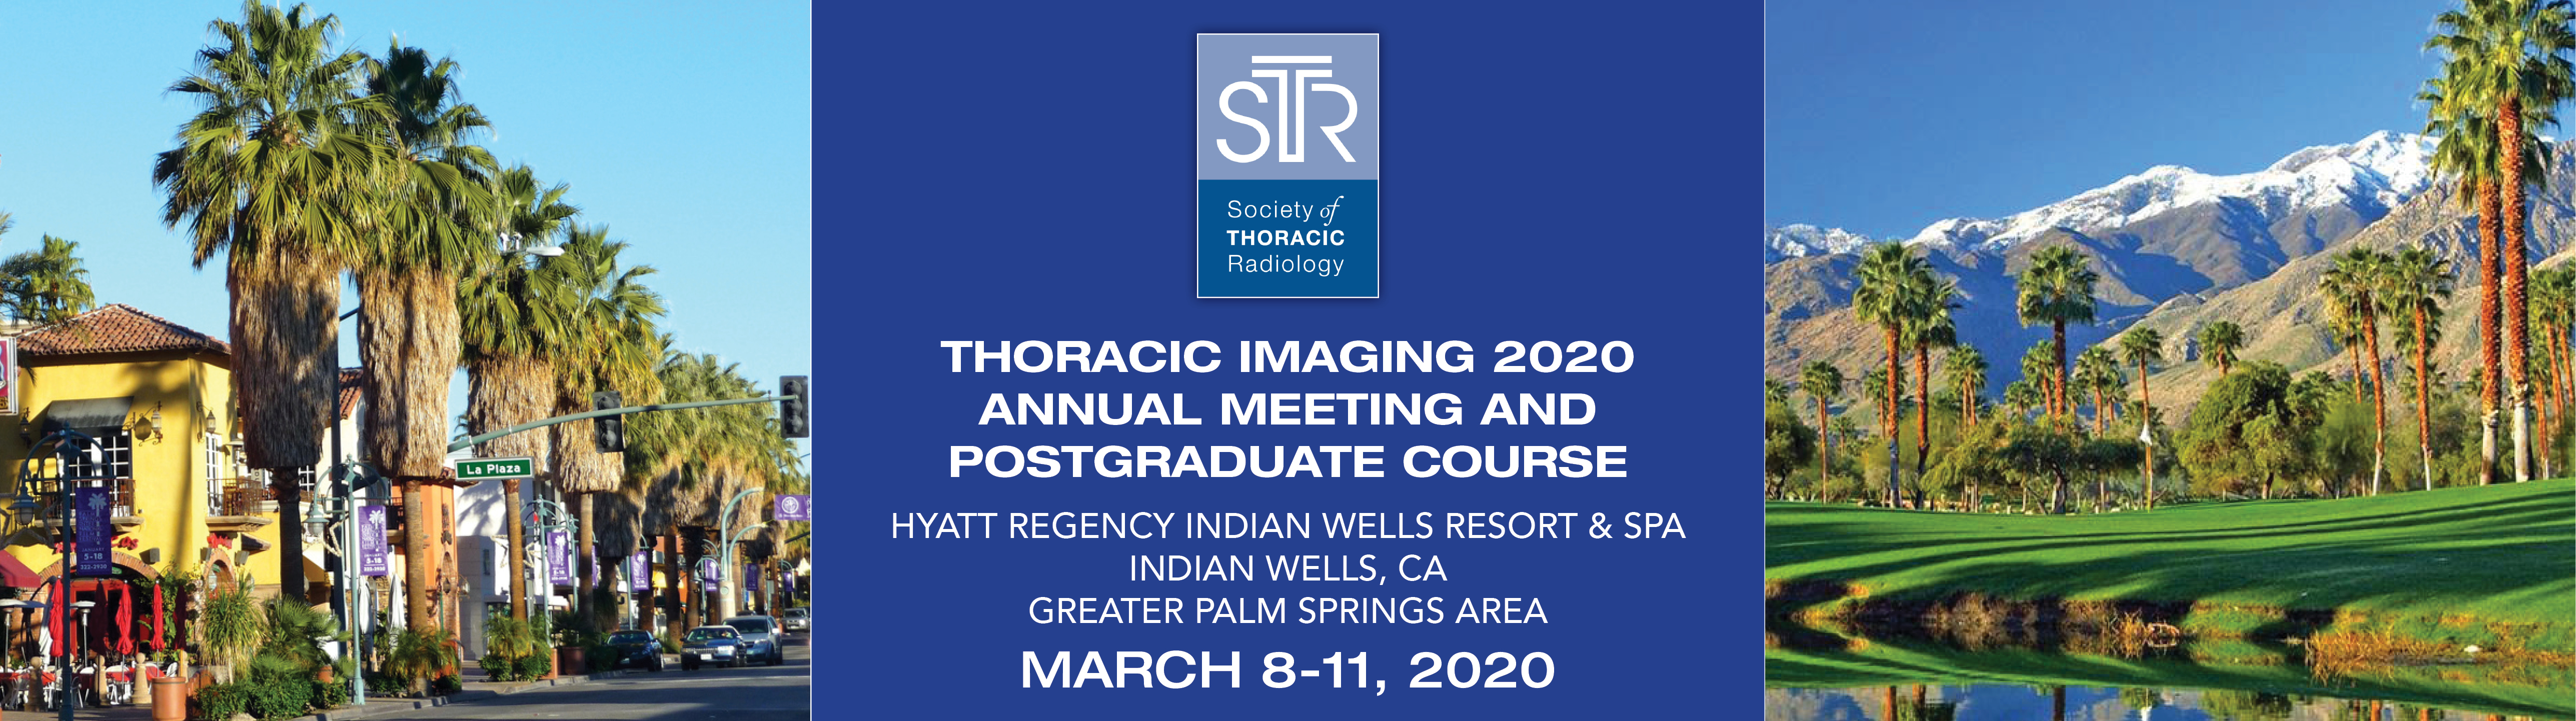 Society of Thoracic Radiology | Annual Meeting